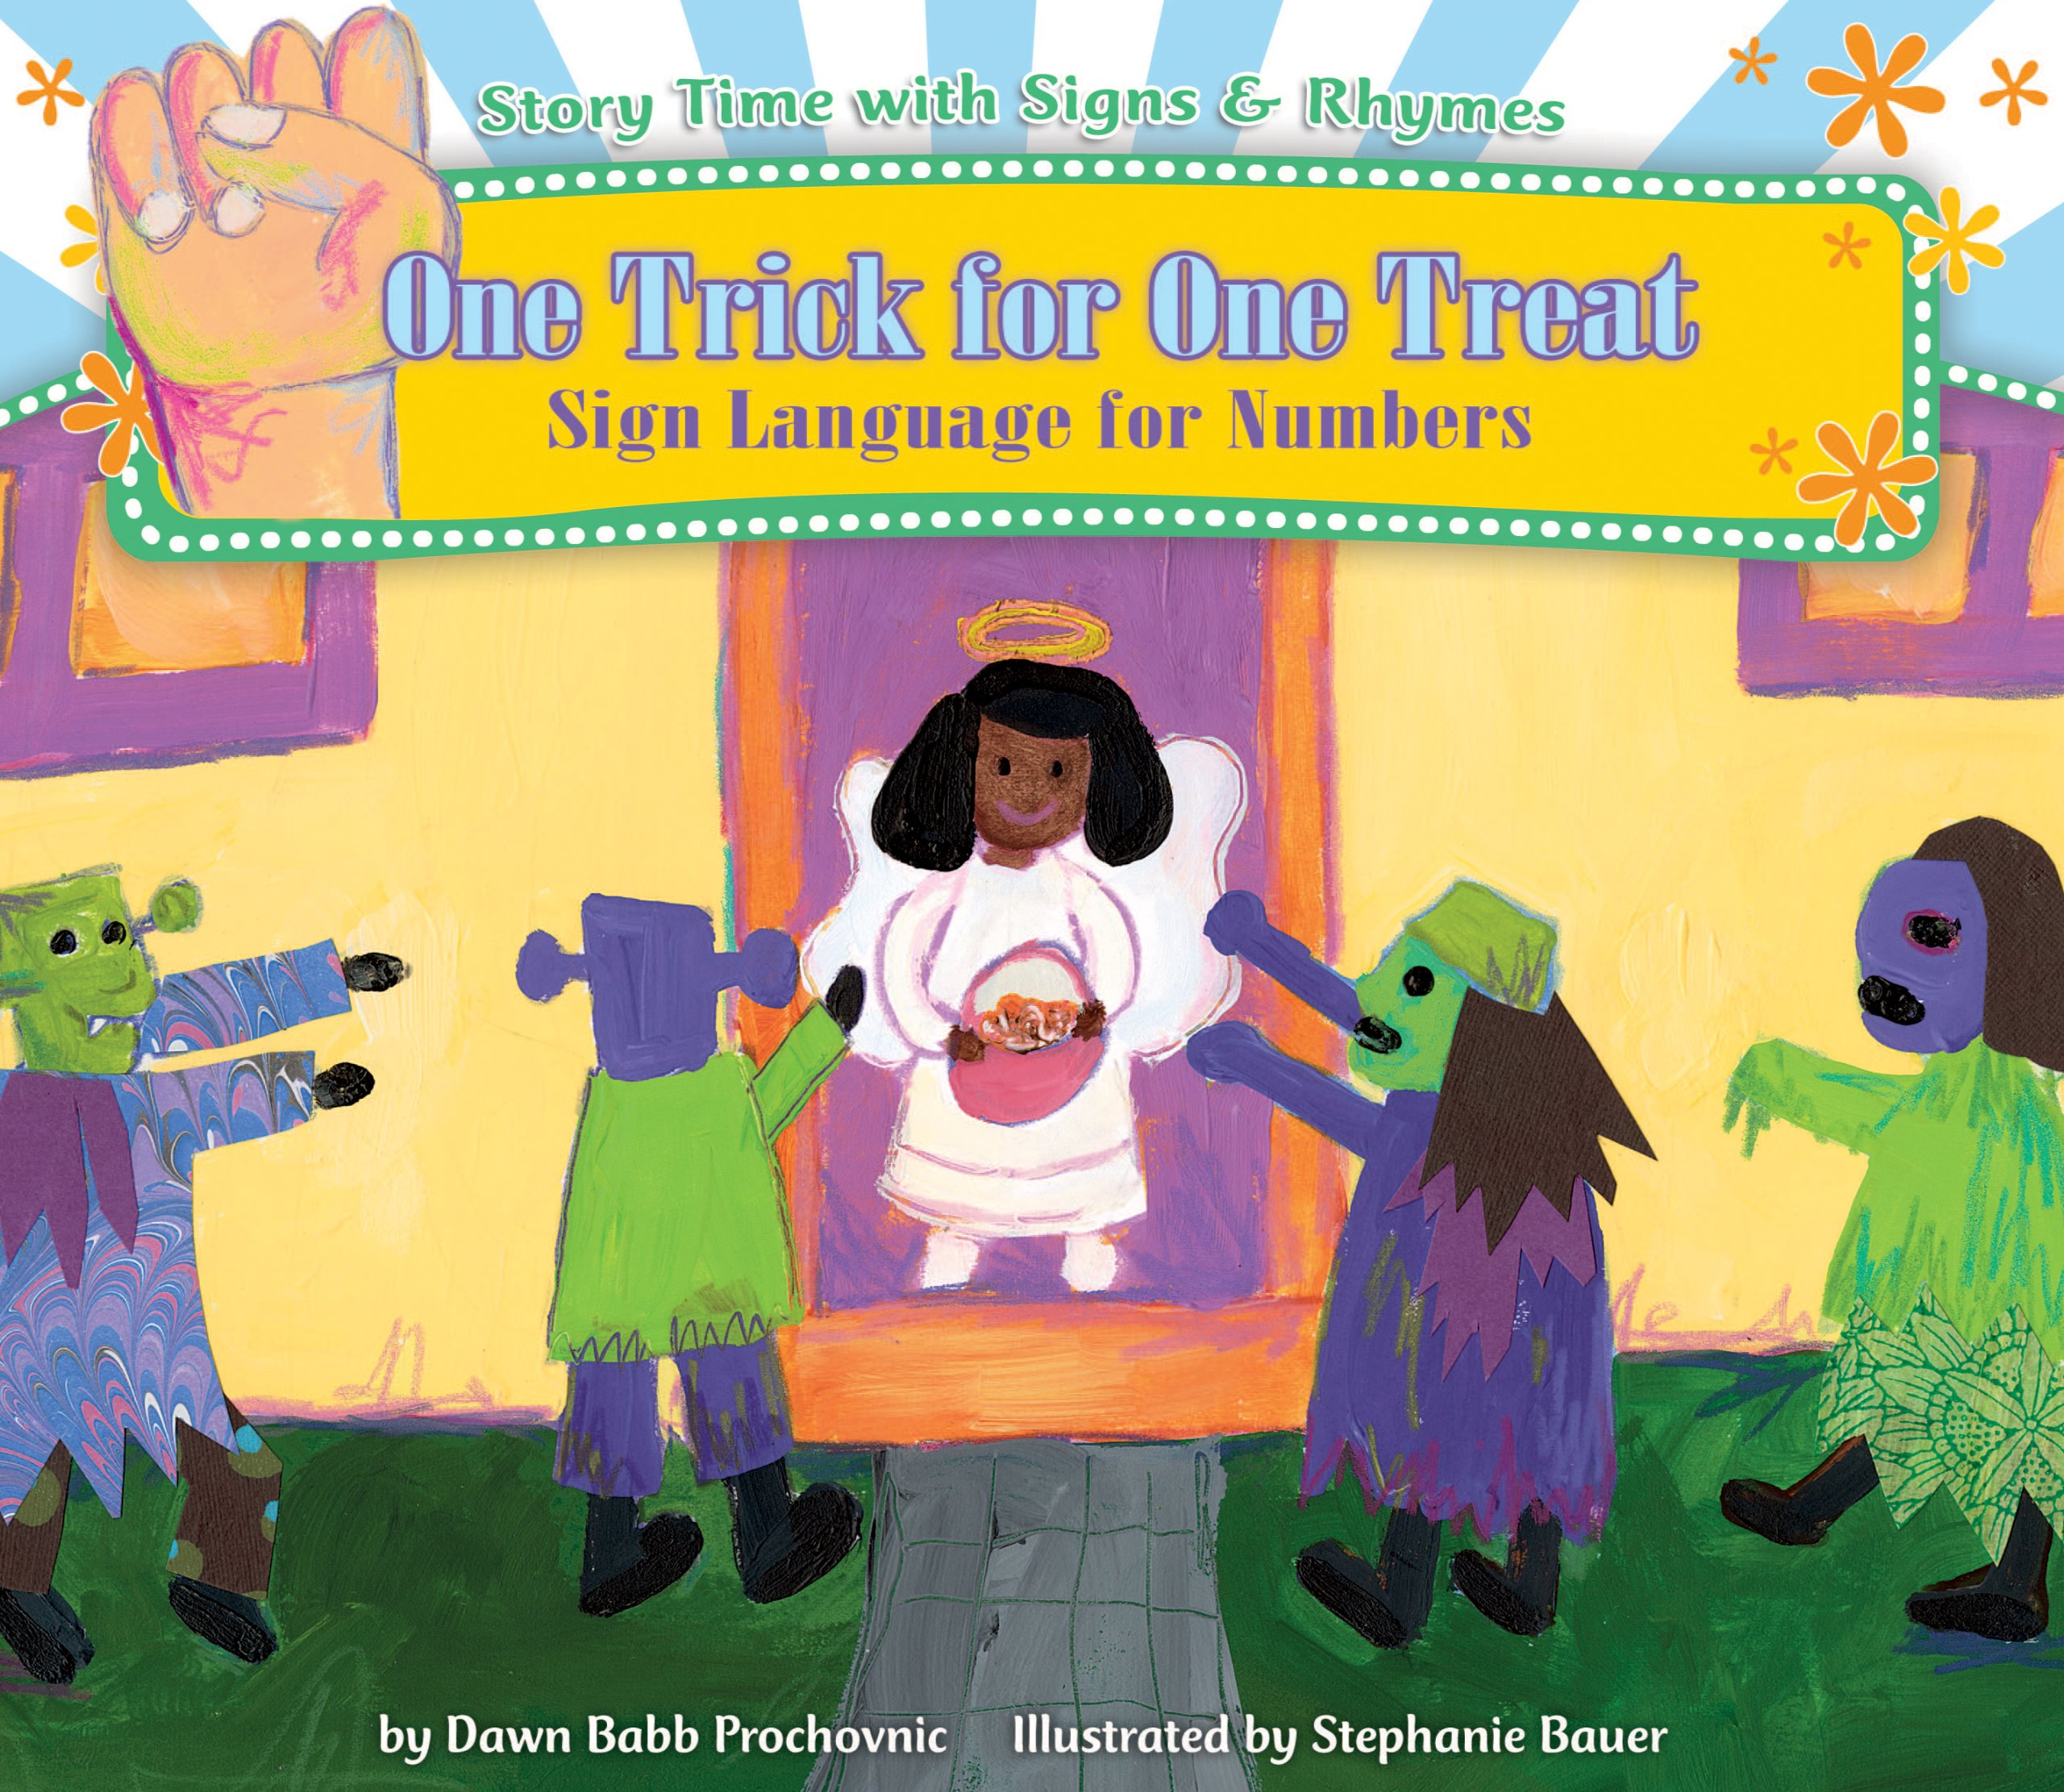 One Trick for One Treat: Sign Language for Numbers (Story Time with Signs & Rhymes) by Harris Communications